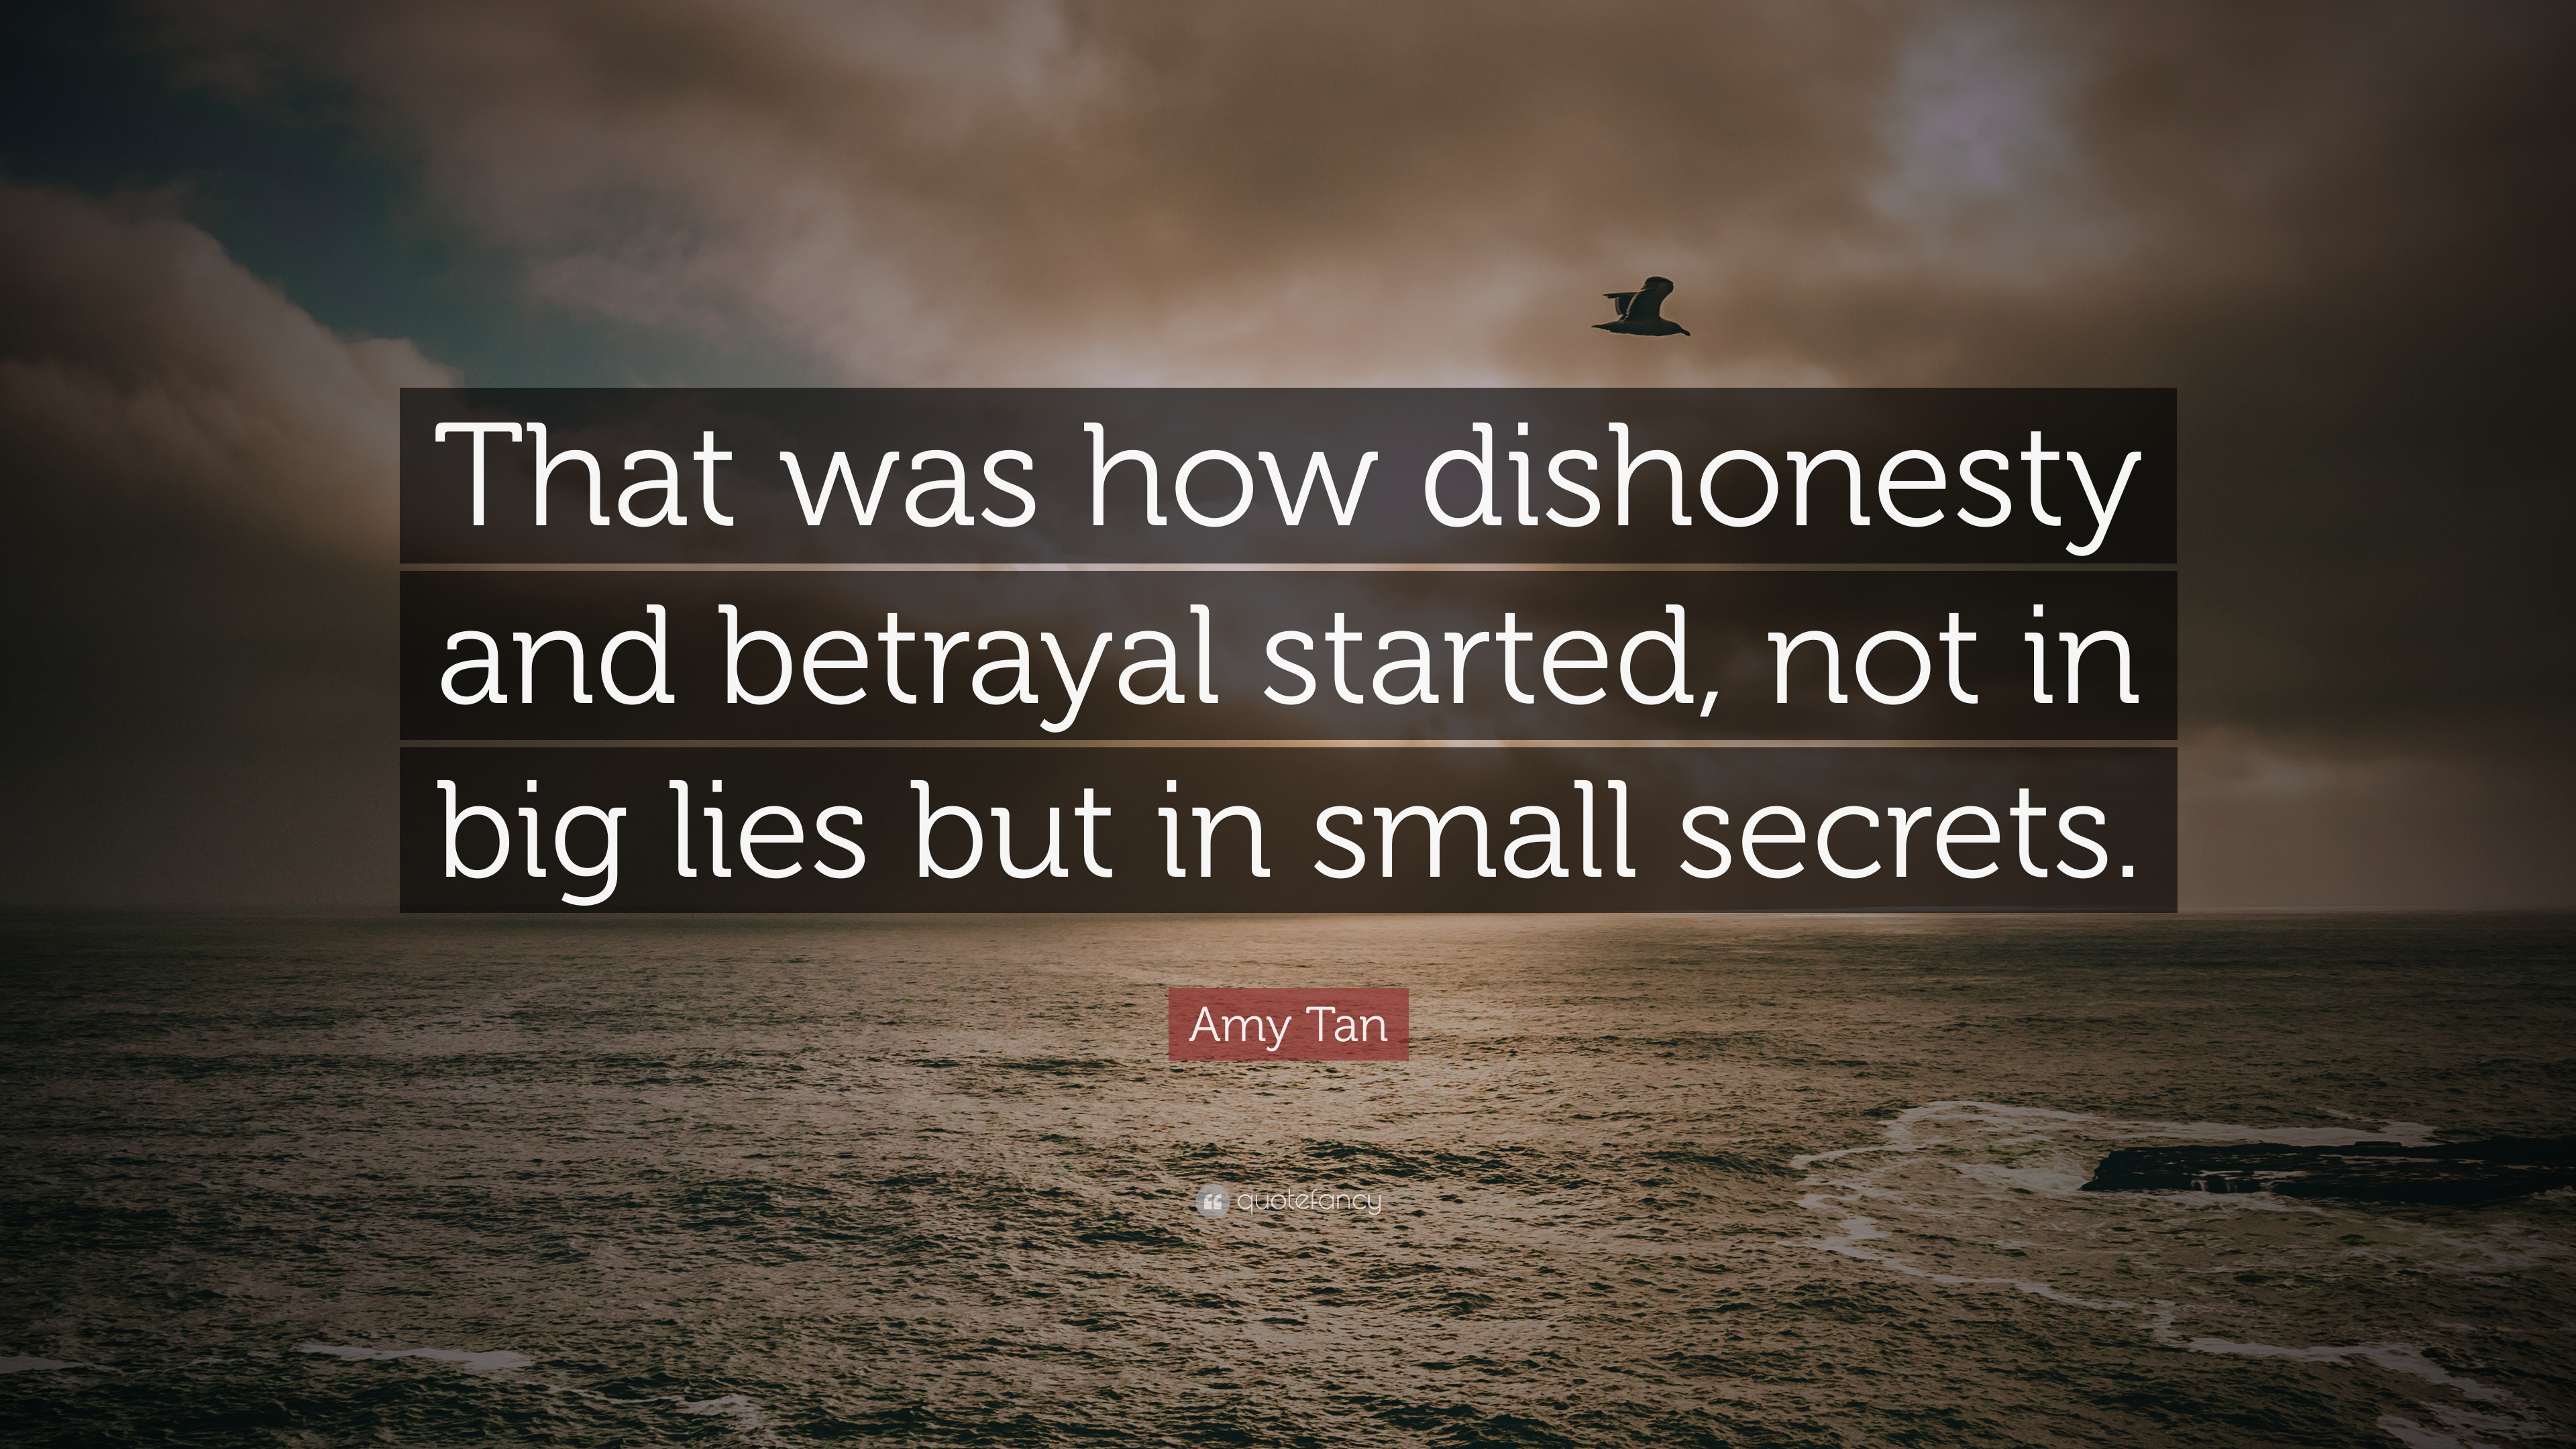 Amy Tan Quote: That was how dishonesty and betrayal